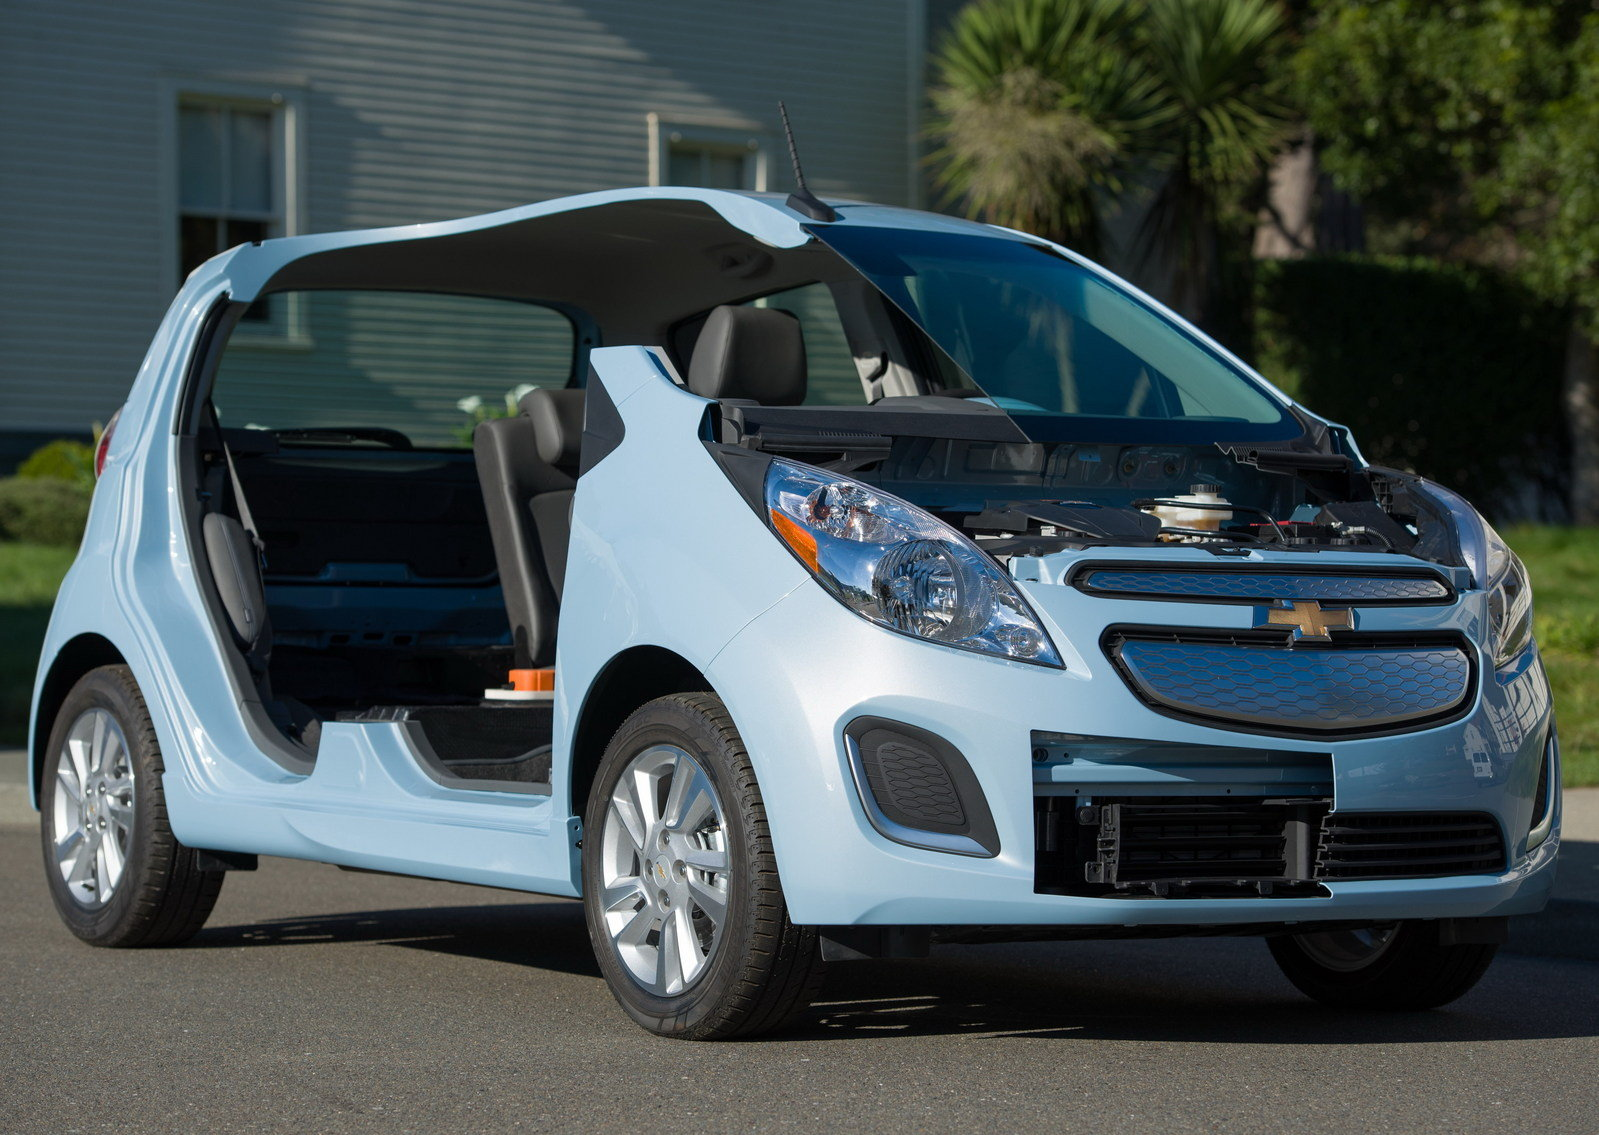 2013 chevrolet spark ev review top speed. Black Bedroom Furniture Sets. Home Design Ideas